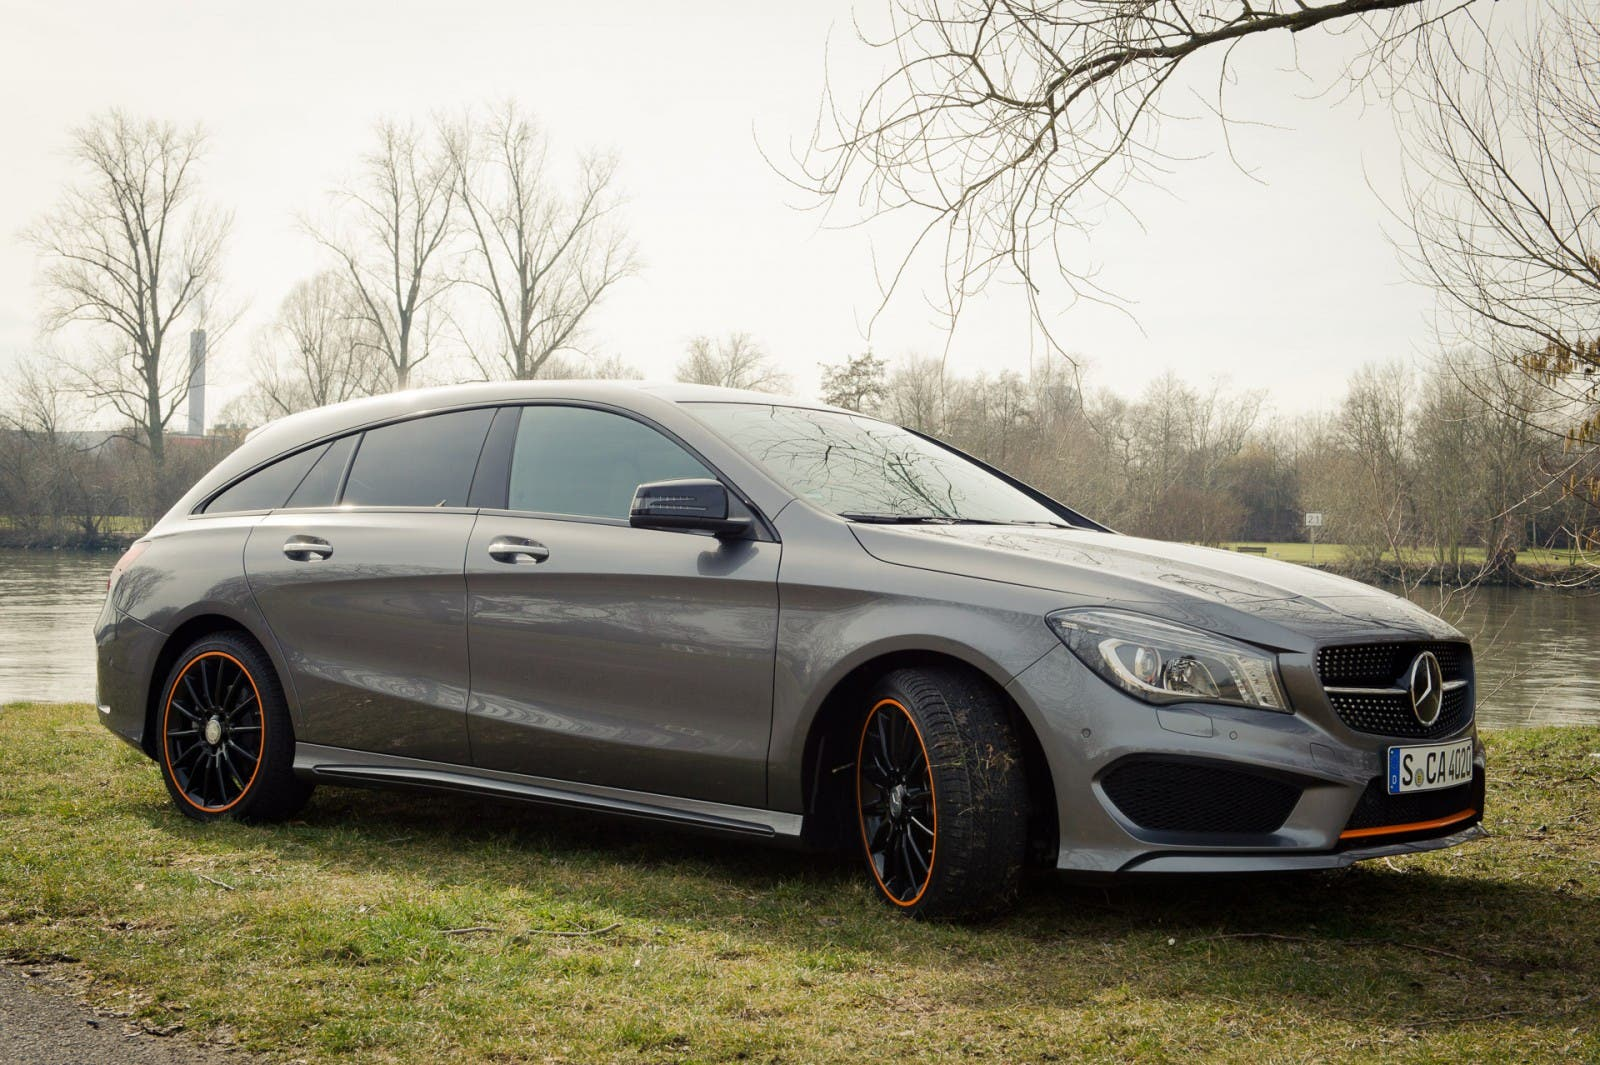 2015-mercedes-benz-cla-250-4matic-shooting-brake-orangeart-edition-mountaingrau-05